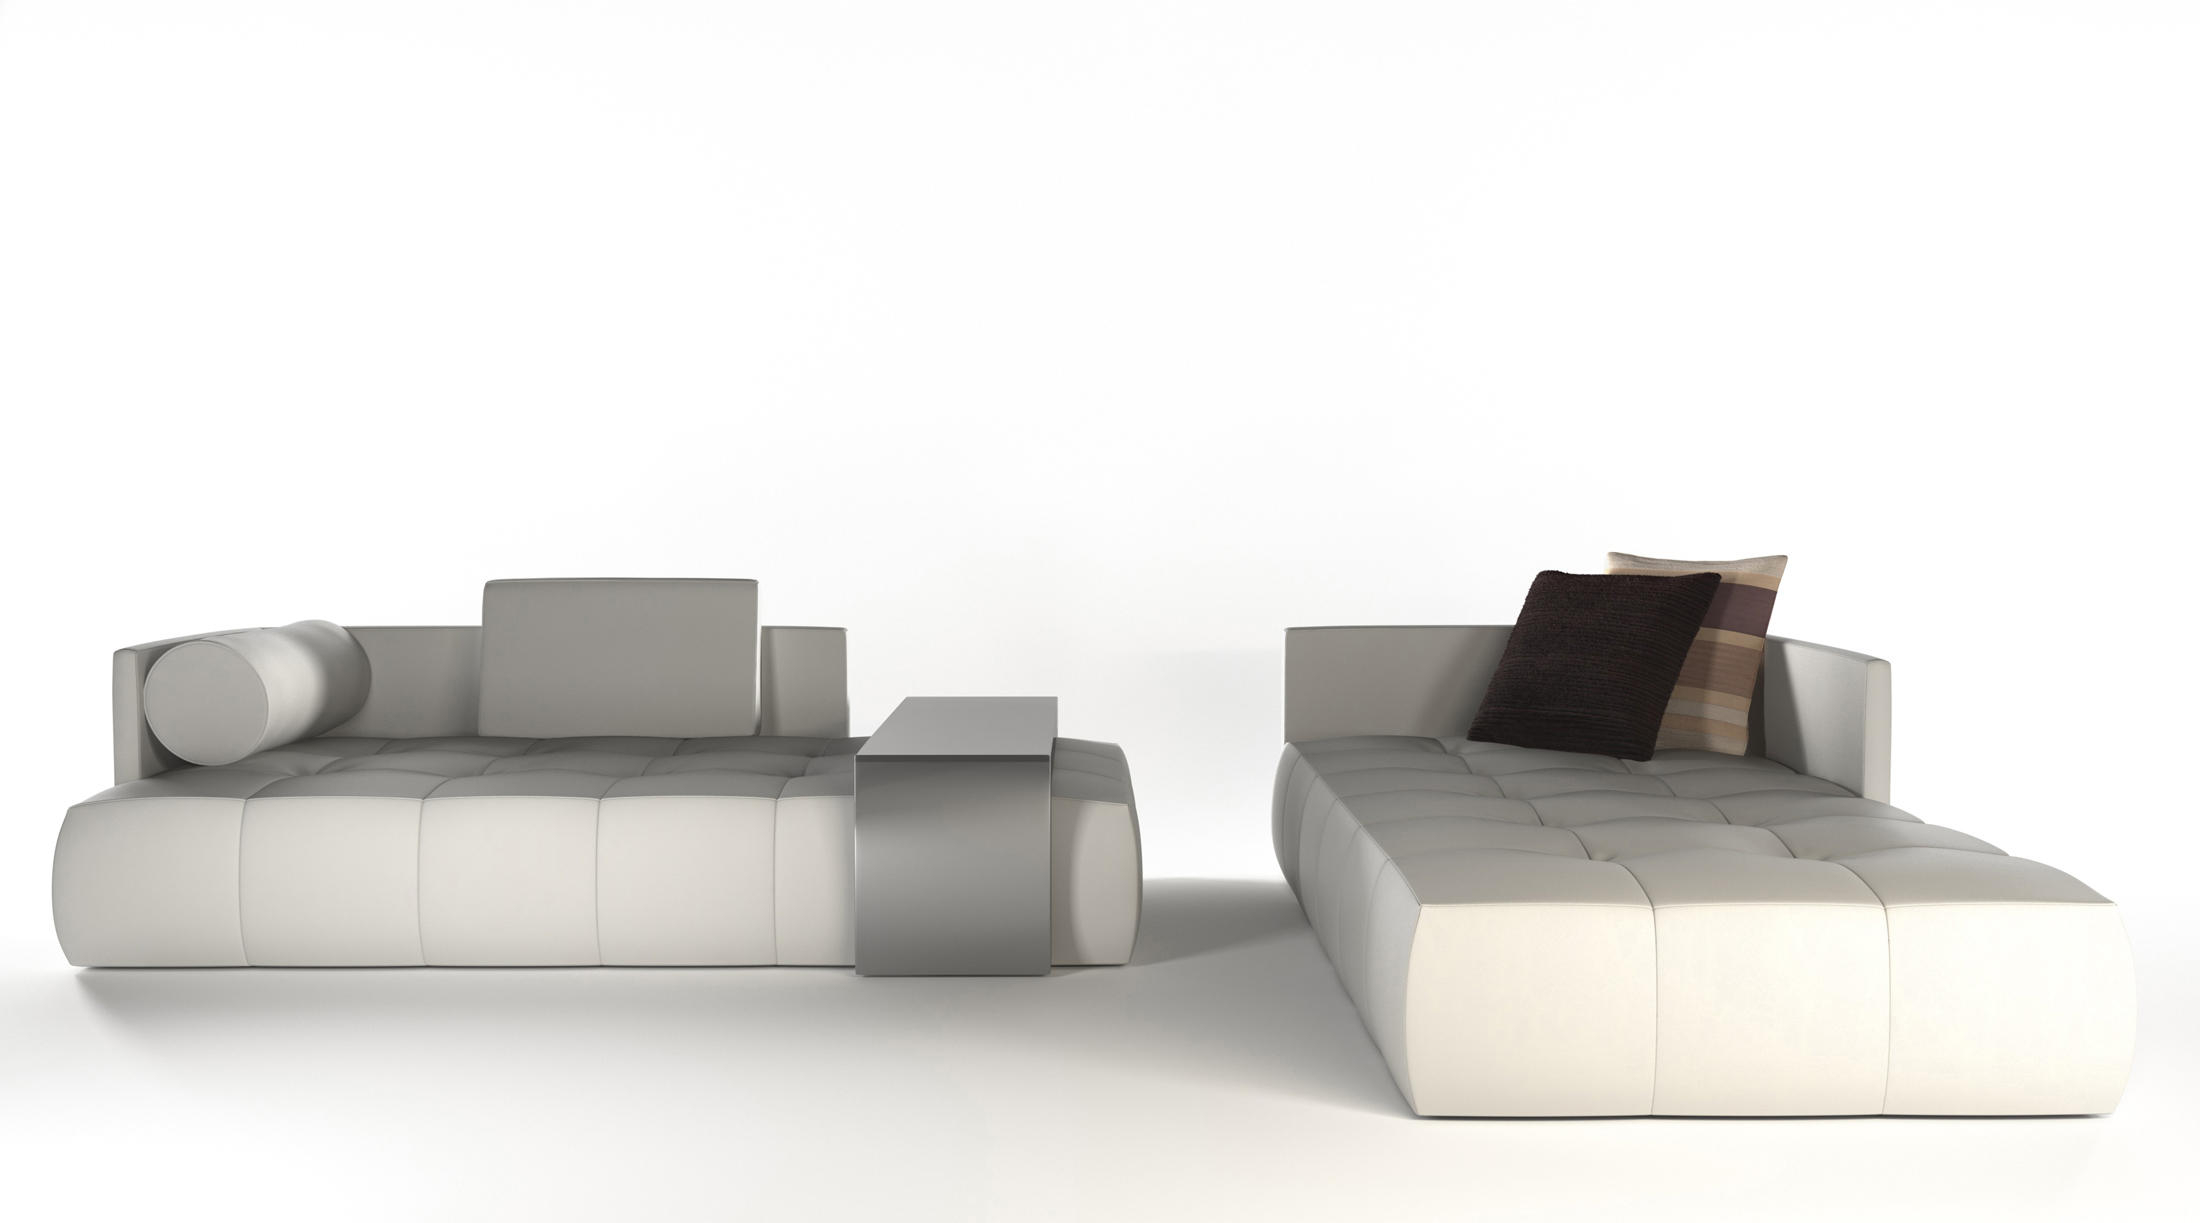 Sofa Chill Out H9d9 Chill Out sofa sofas From Thà Ny Collection Architonic